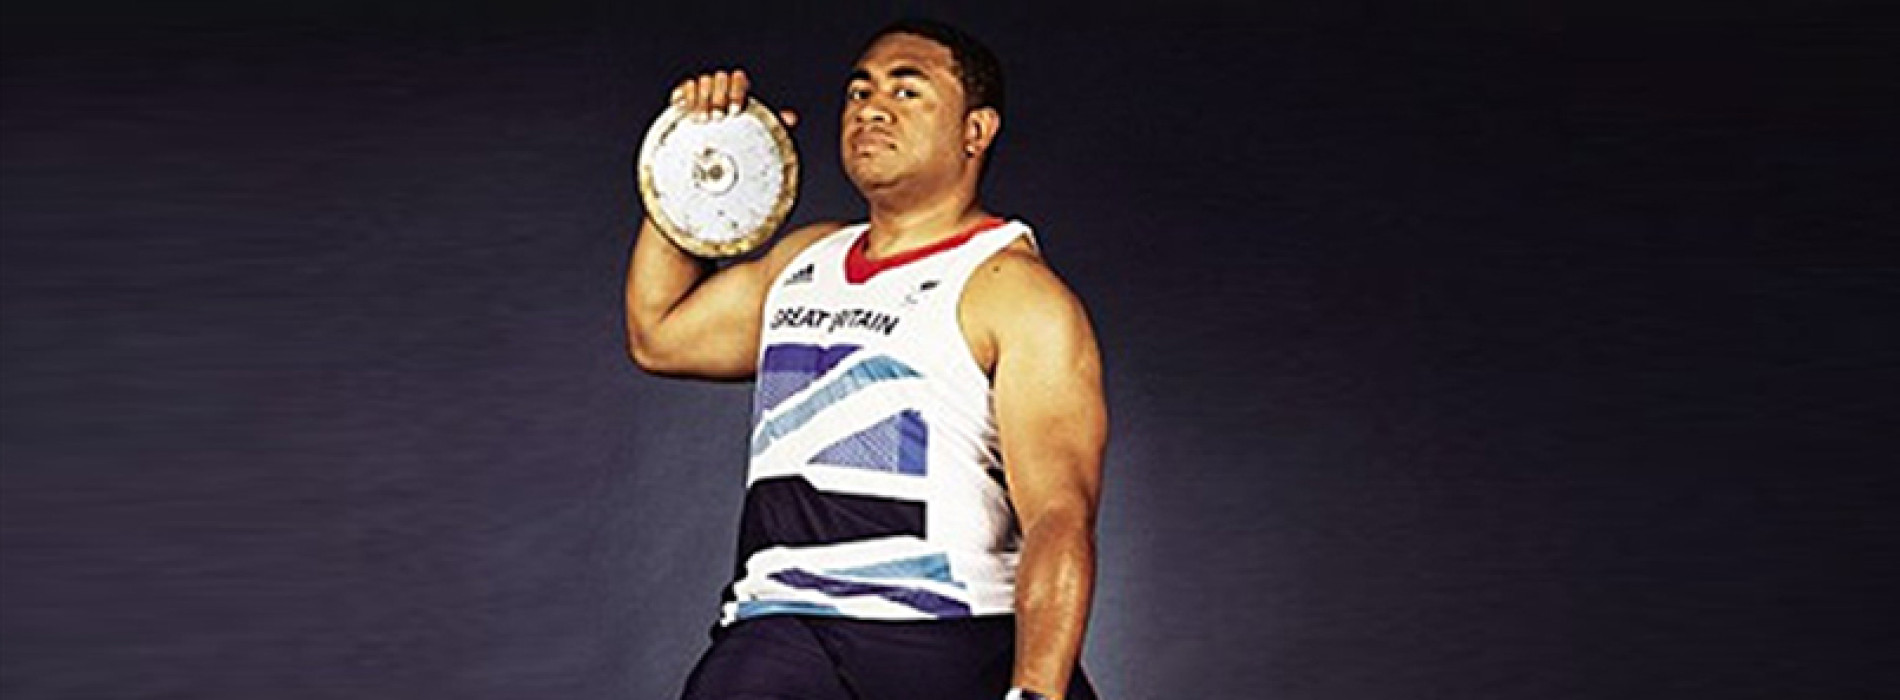 The Invictus Games 2014 – Q&A with Derek Derenalagi